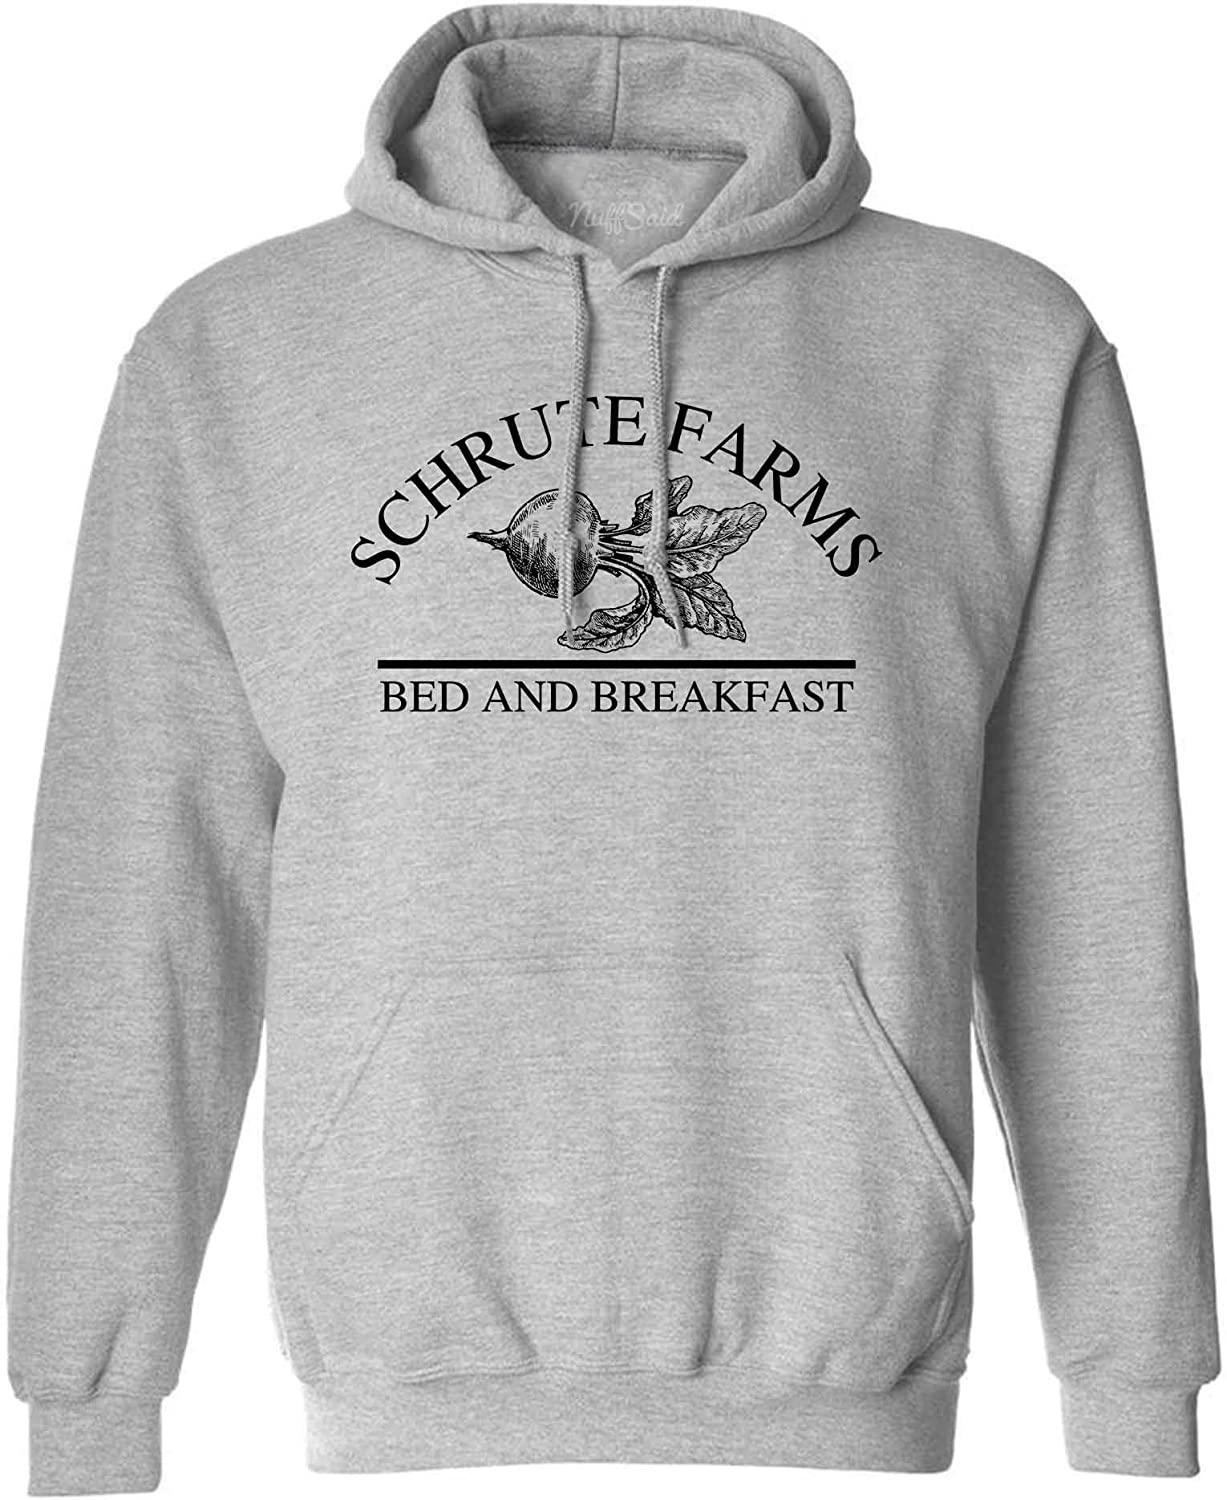 NuffSaid Schrute Farms Beets Bed and Breakfast Hooded Sweatshirt Sweater Pullover Unisex Hoodie